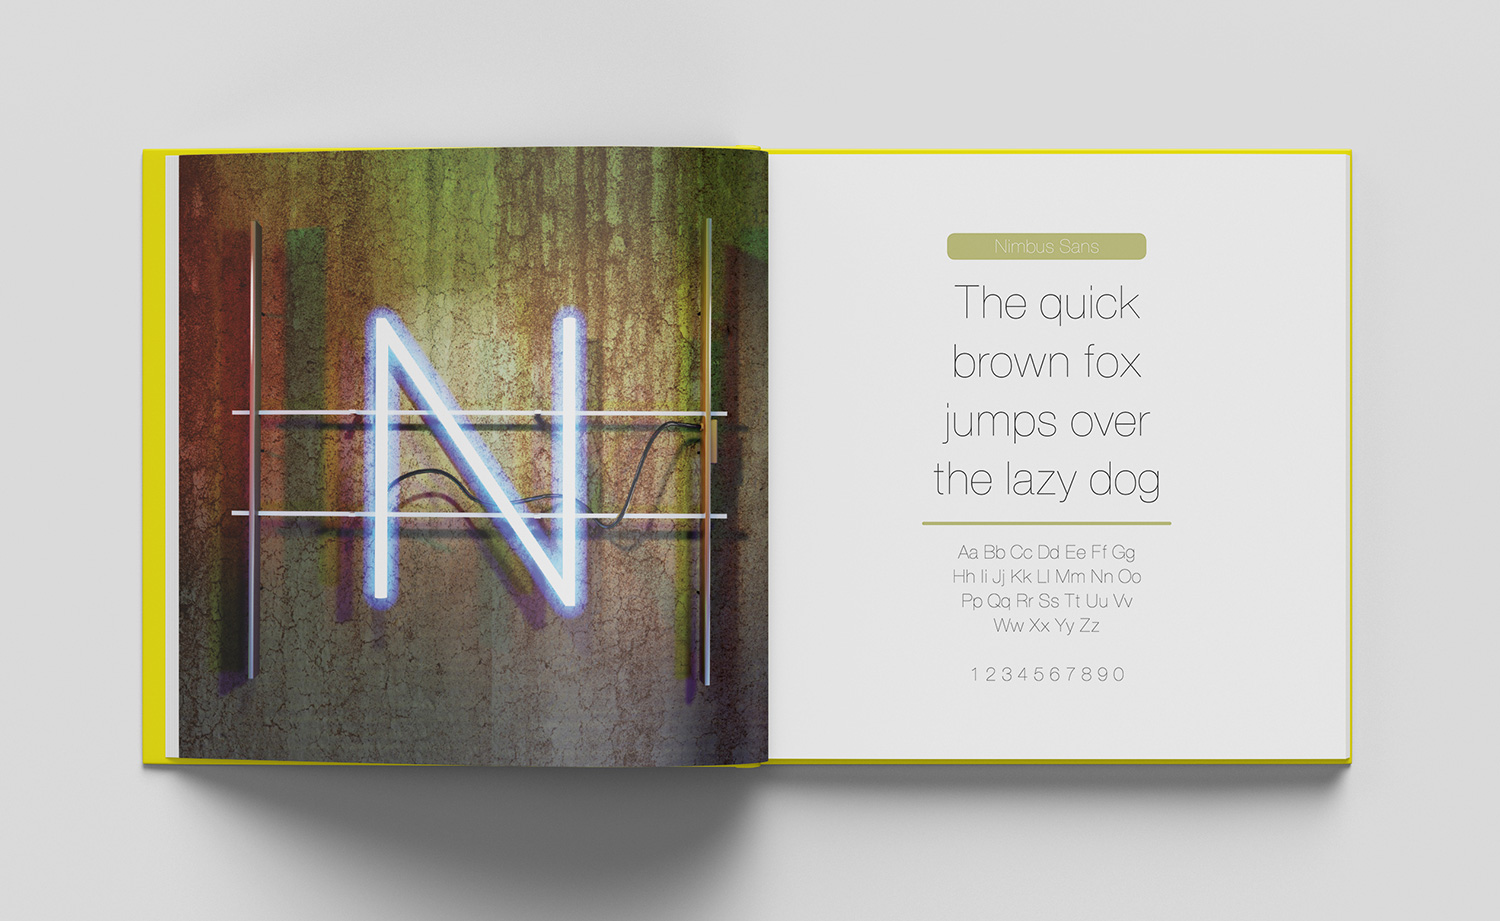 ABC of typography book spread letter N made from neon light on a grunge backdrop